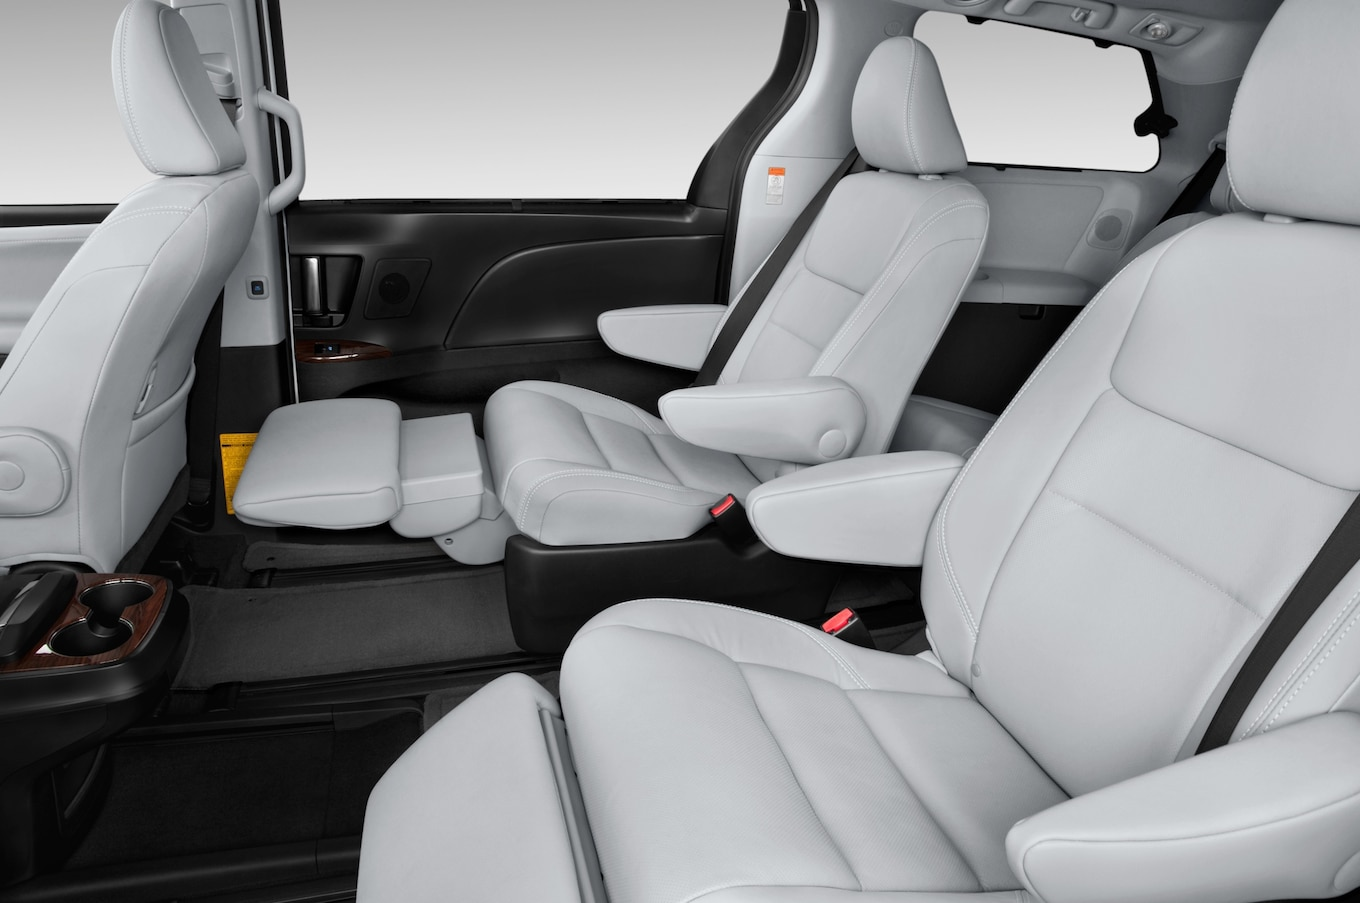 toyota sienna captains chairs removal swivel dining 2015 first look motor trend